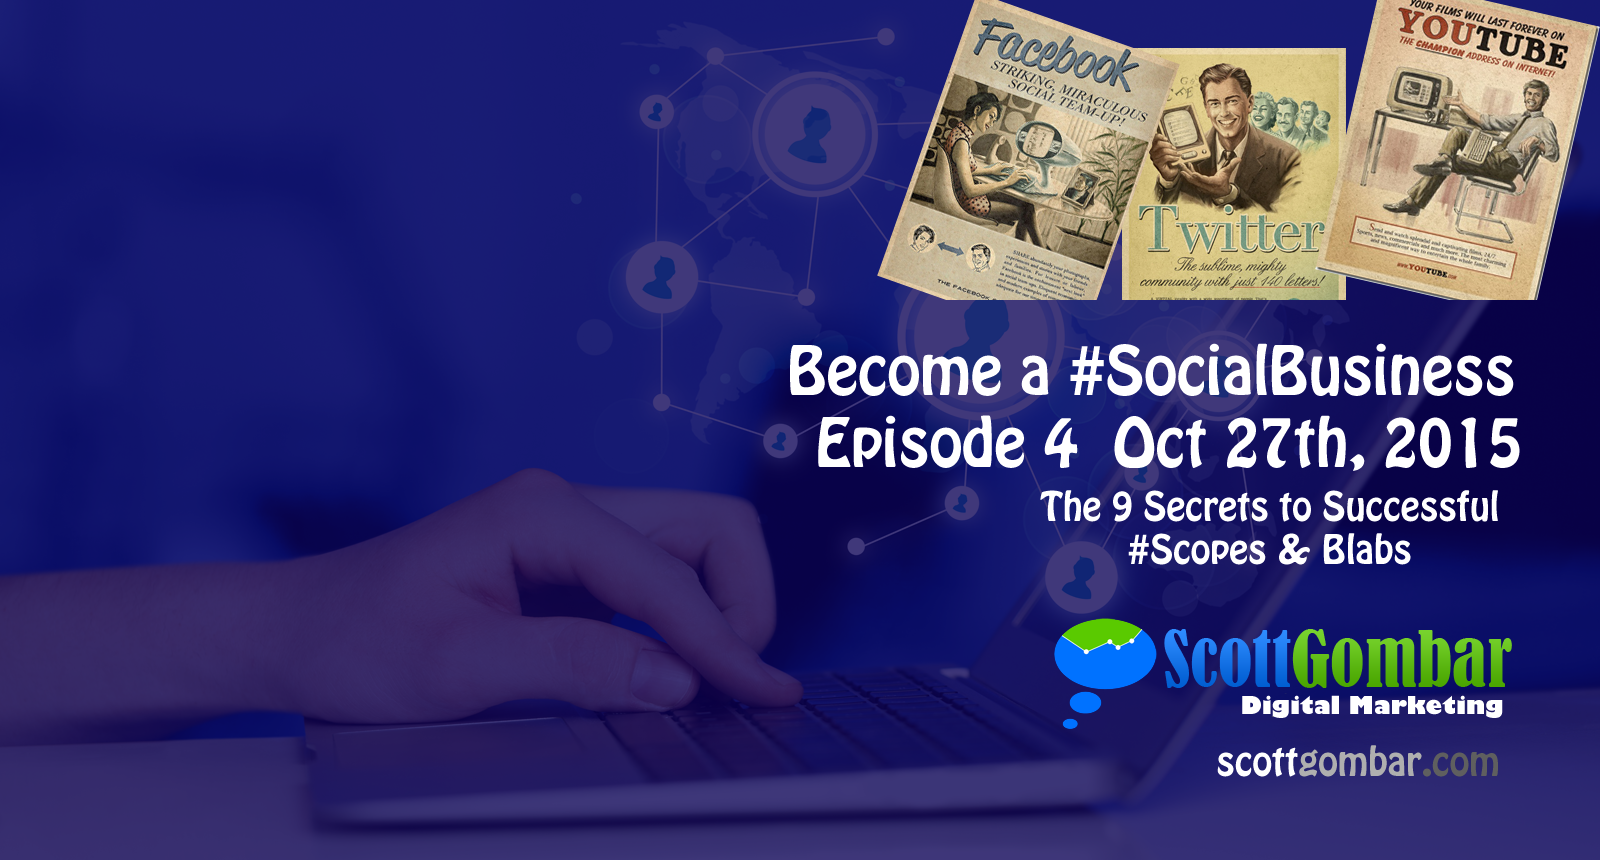 Become a Social Business Episode 4